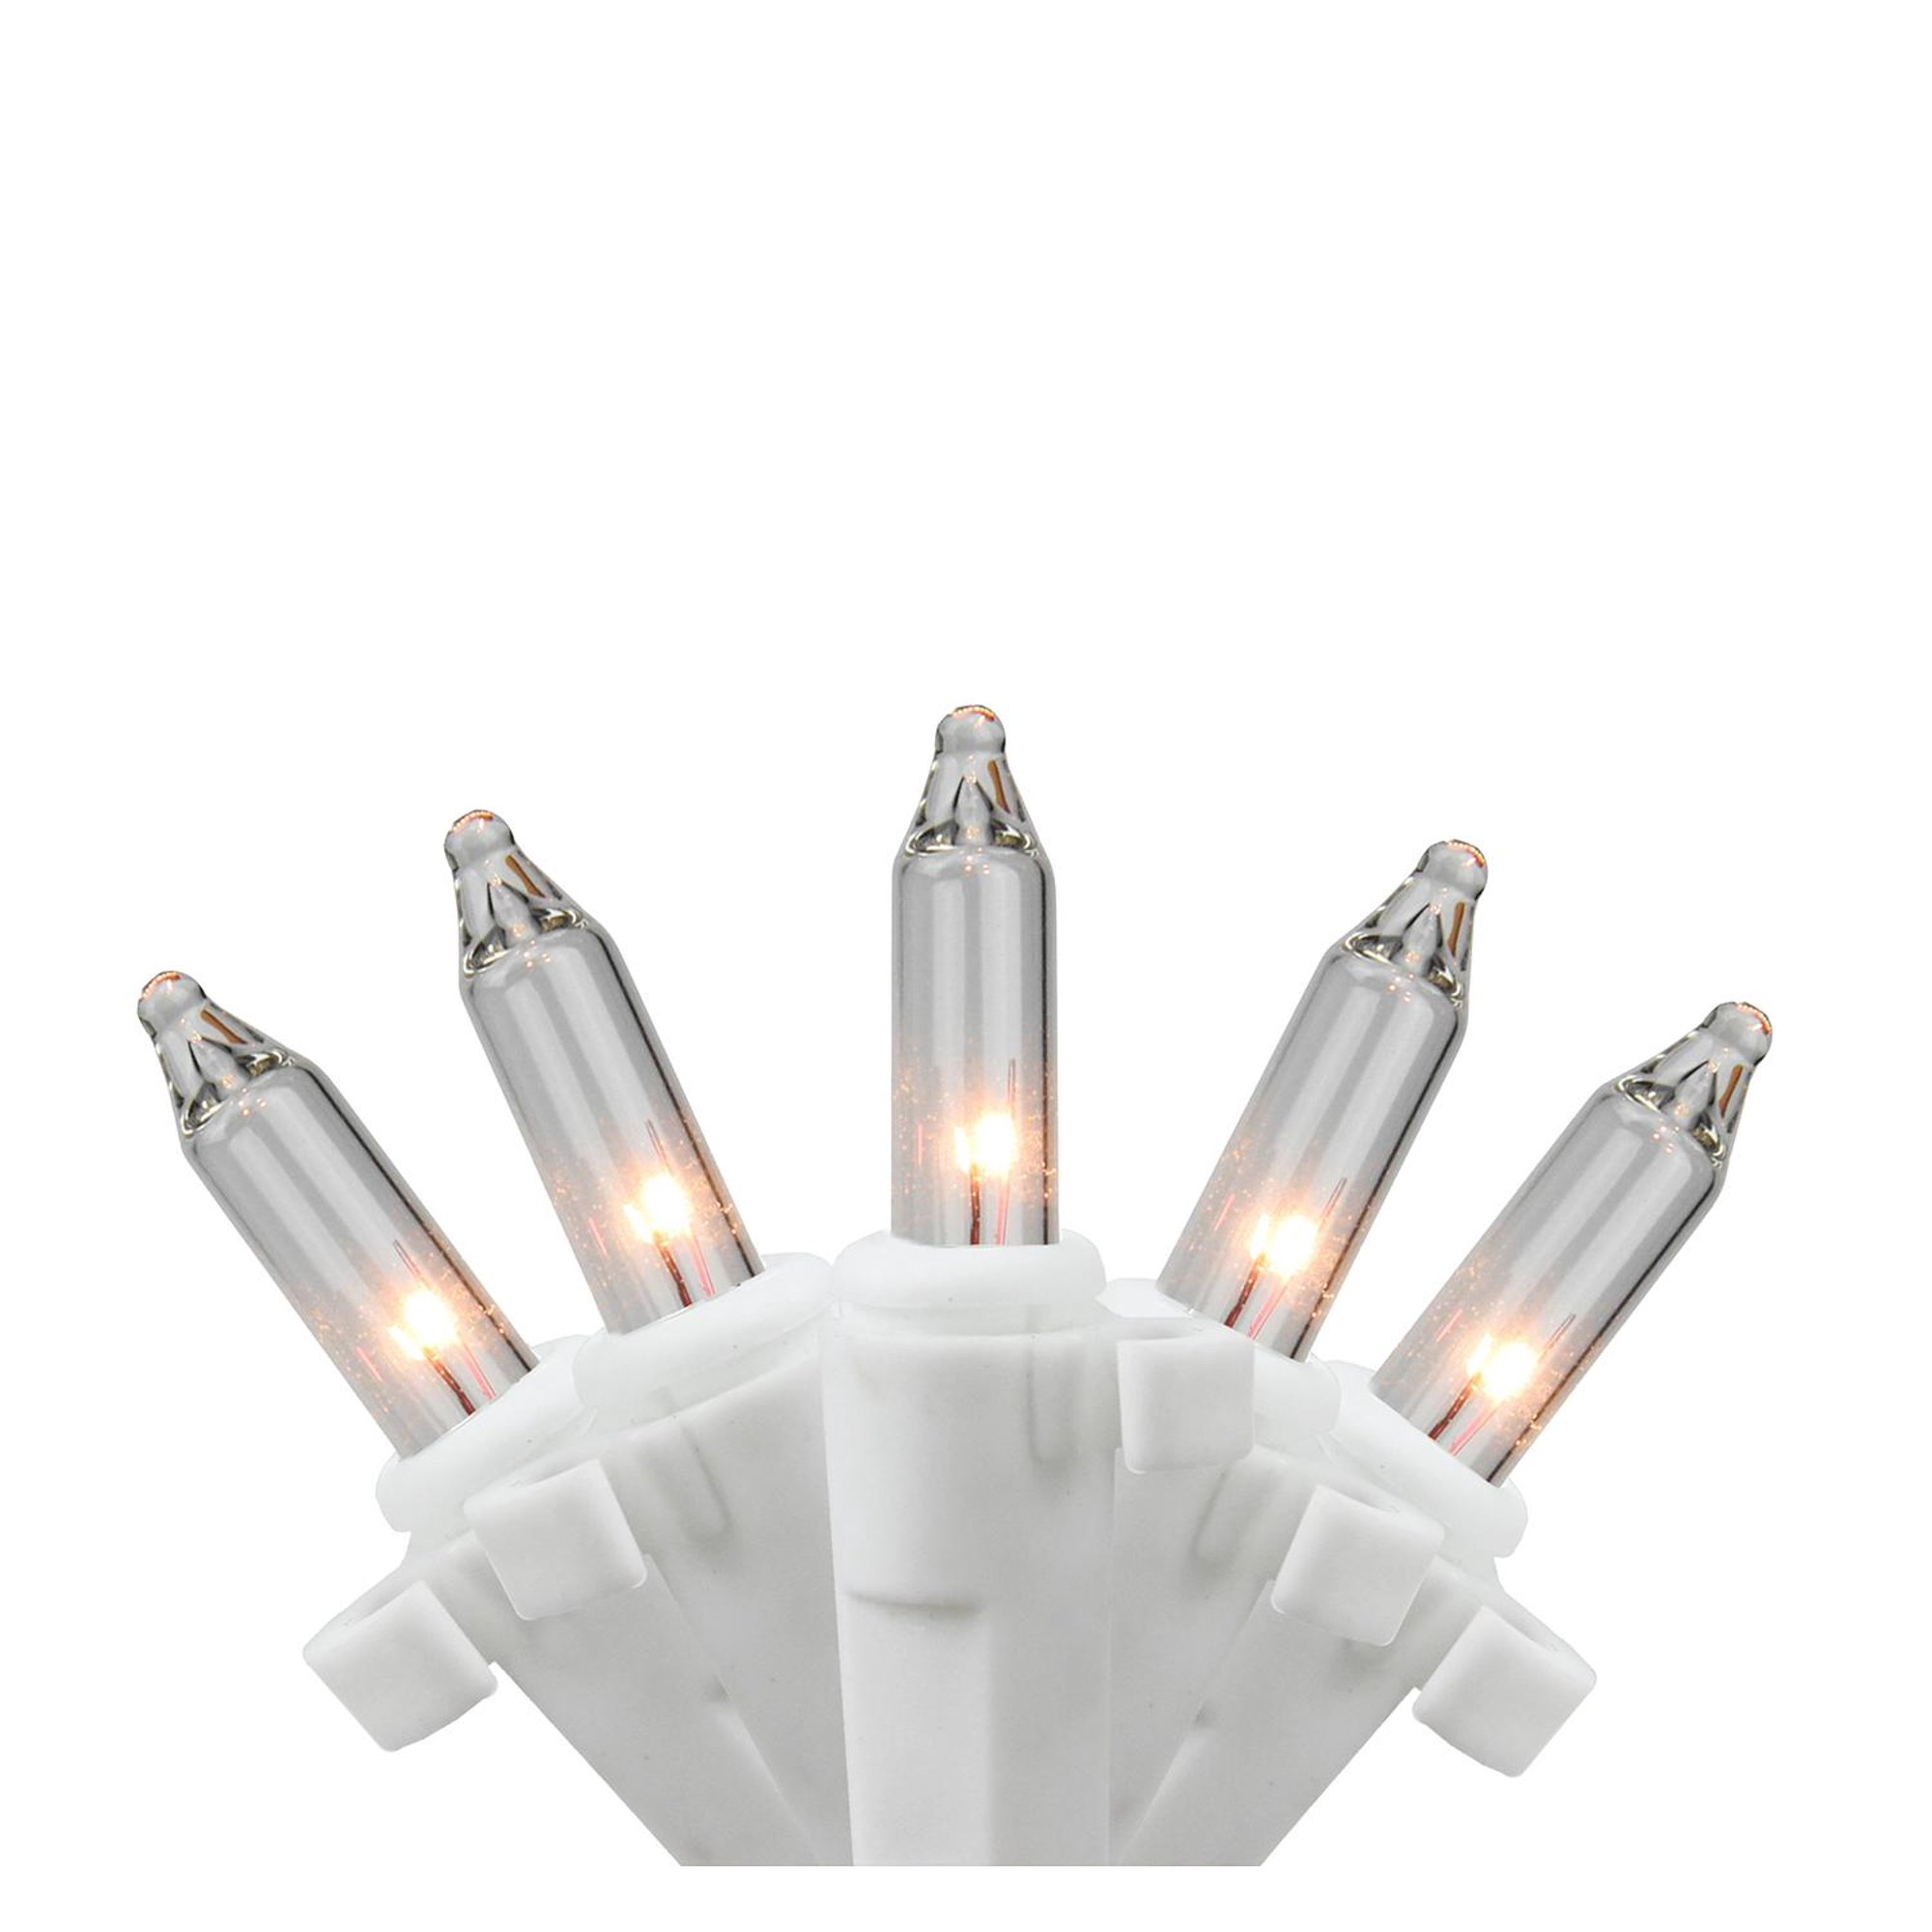 Replacement Christmas Bulbs.50 Clear Mini Replacement Christmas Lights With Clips For Outdoor Decorations